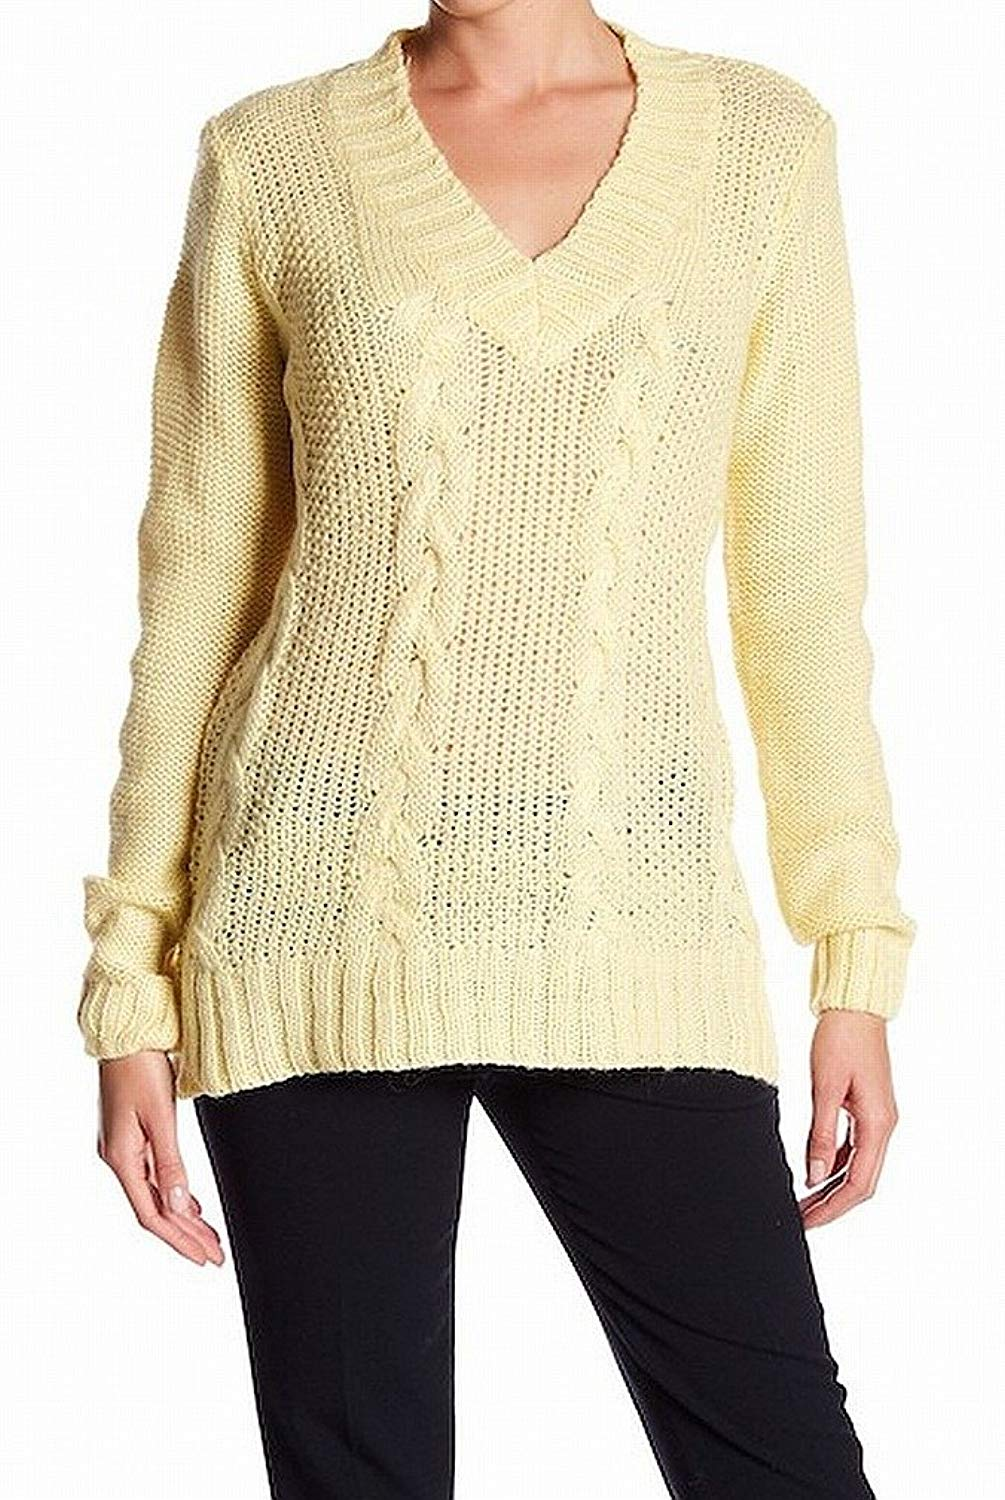 9a42cdce48 Get Quotations · Andrea Jovine Womens Large Cable Knit V-Neck Sweater  Yellow L